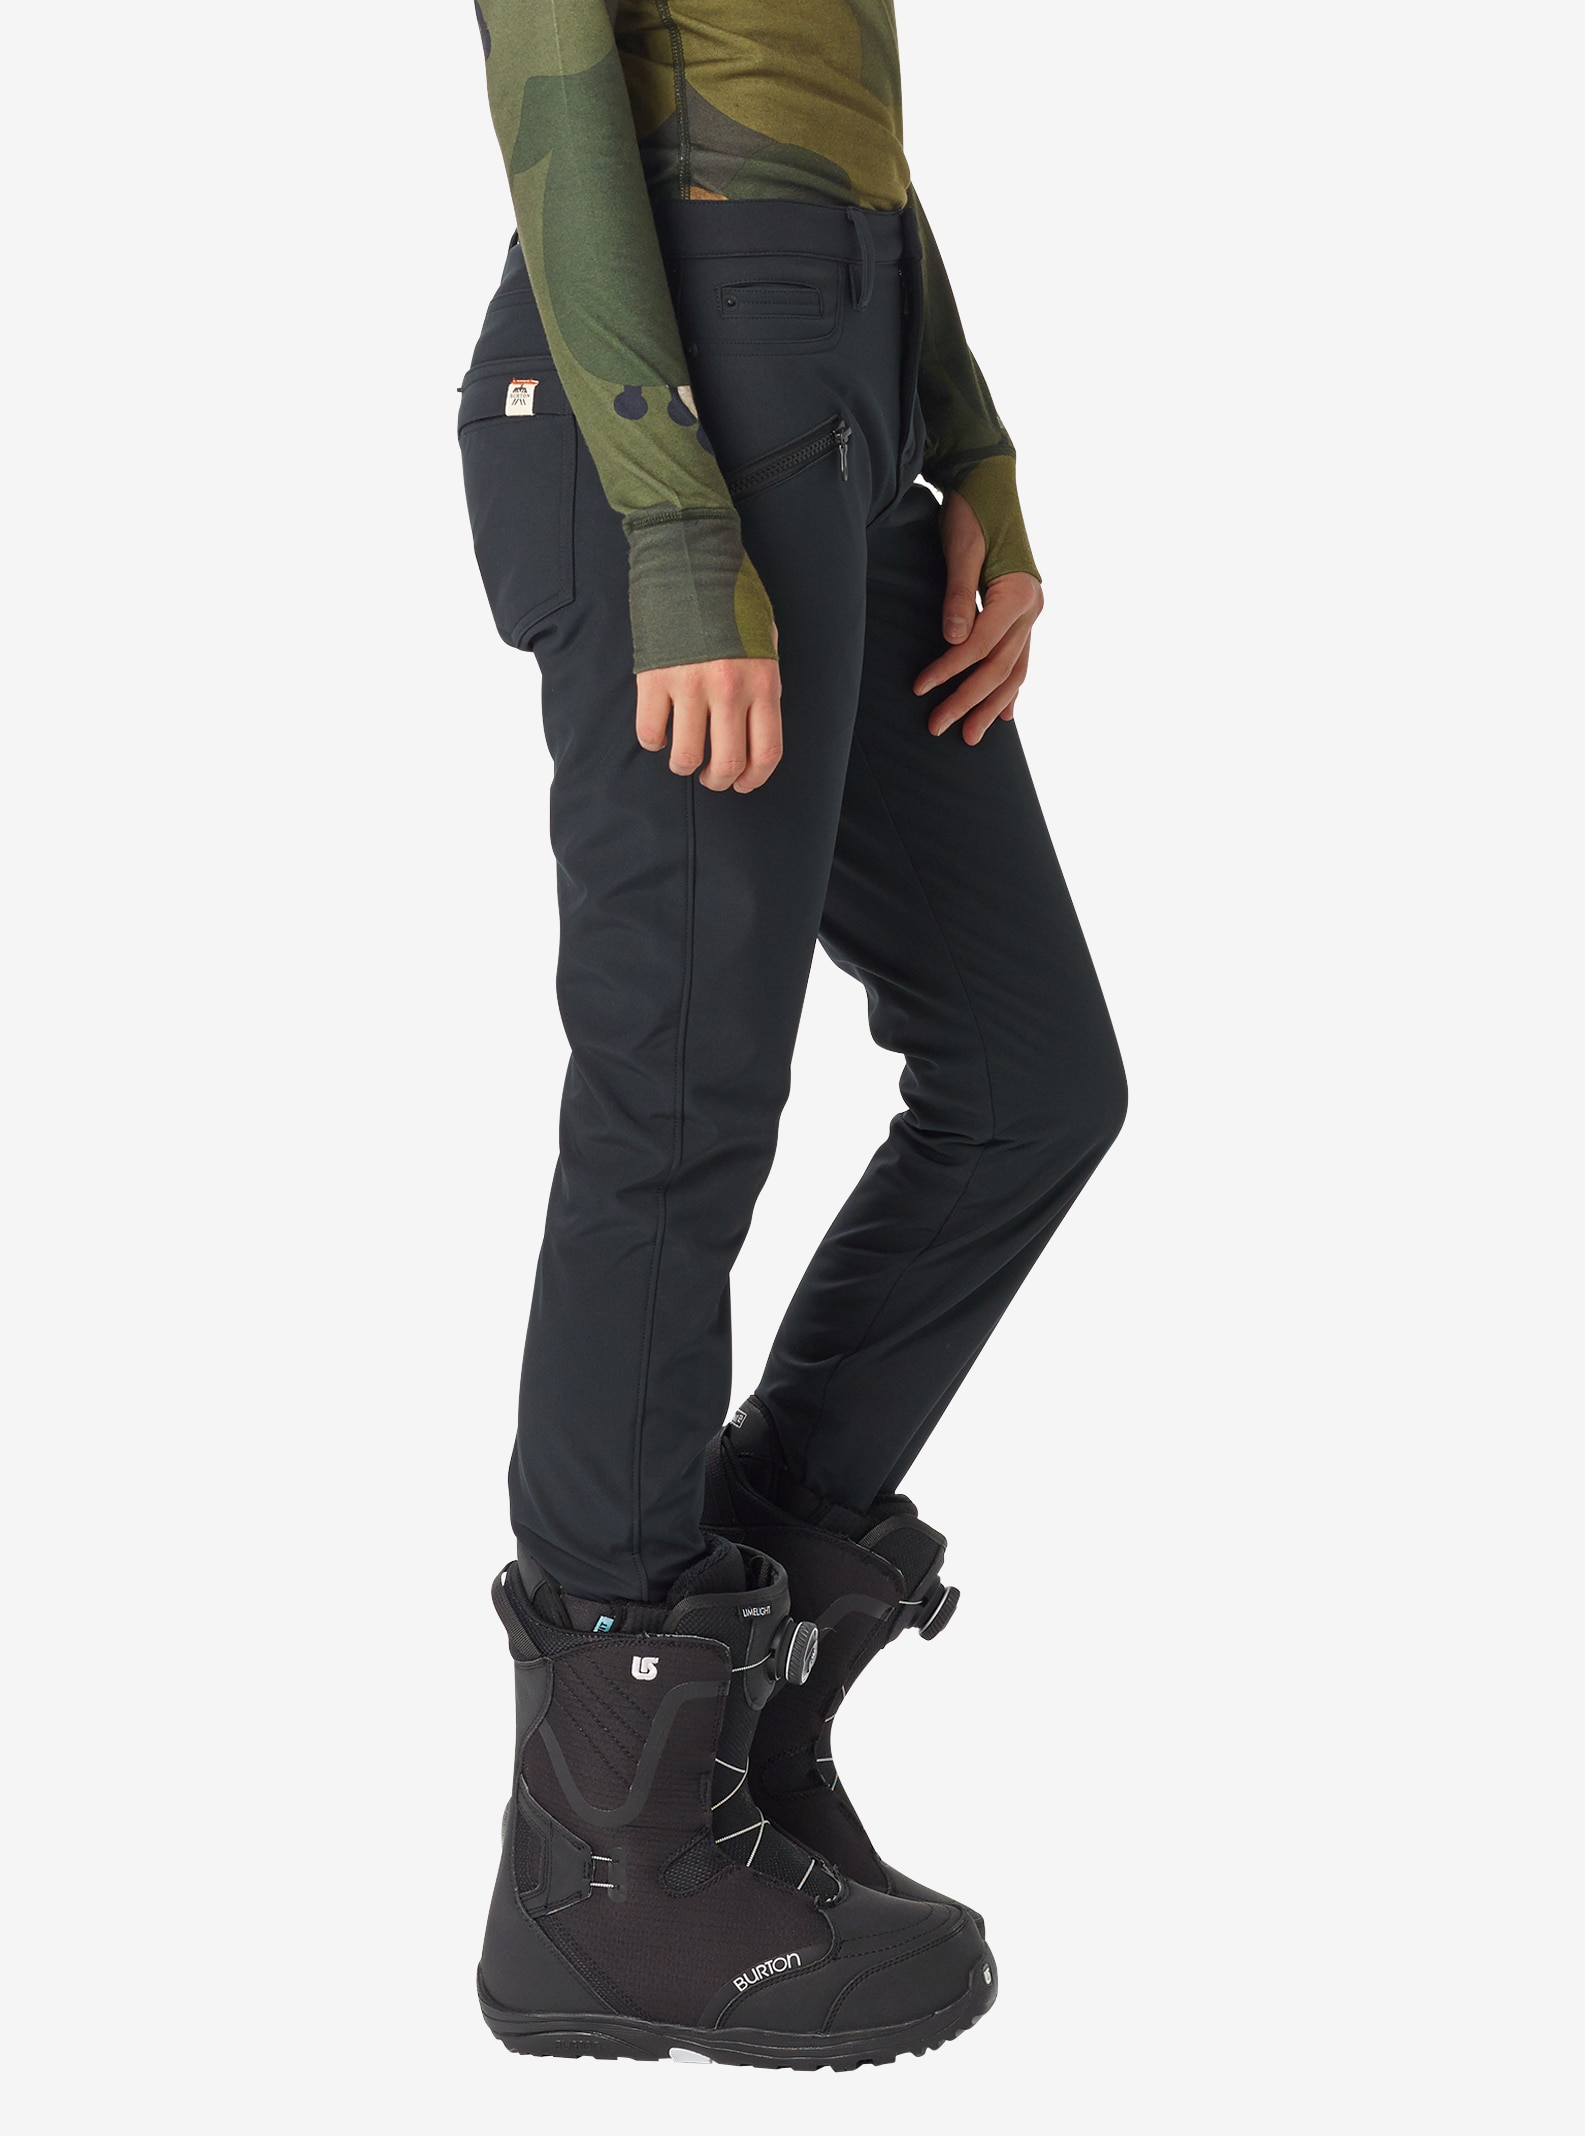 Women's Burton Ivy Pant shown in True Black